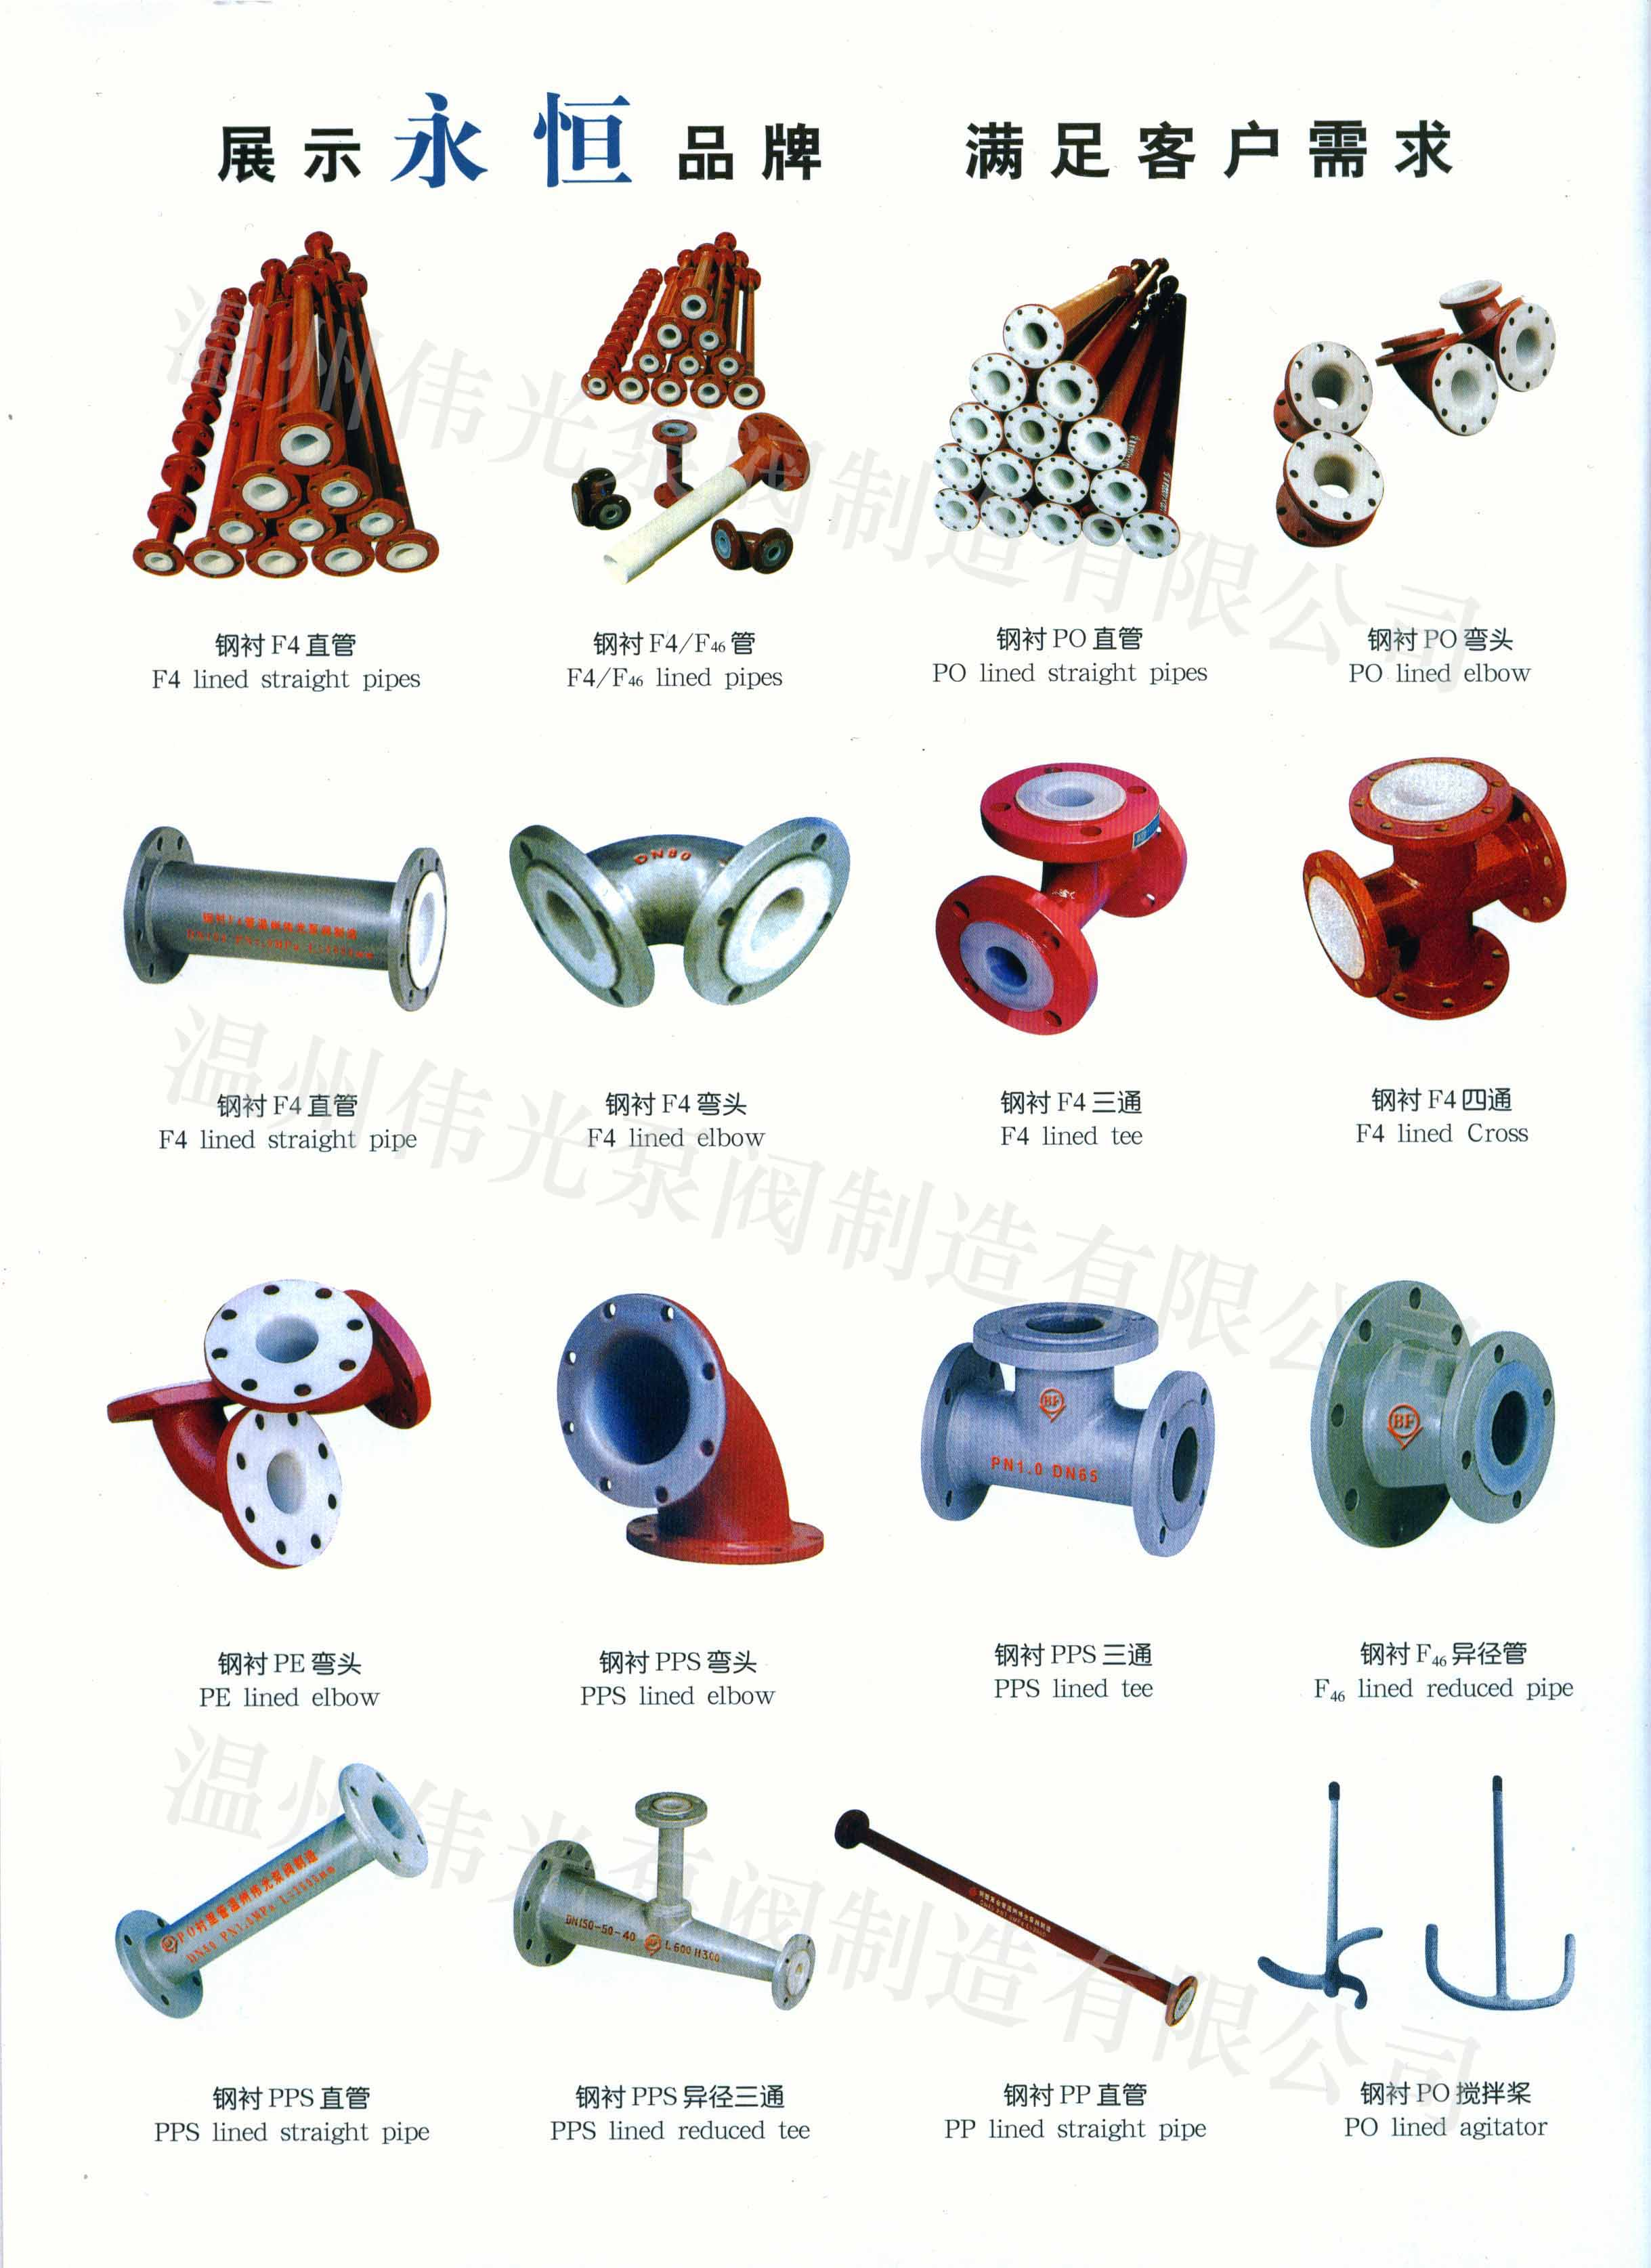 the pipe coated ptfe ,the pipe coated polyolefin